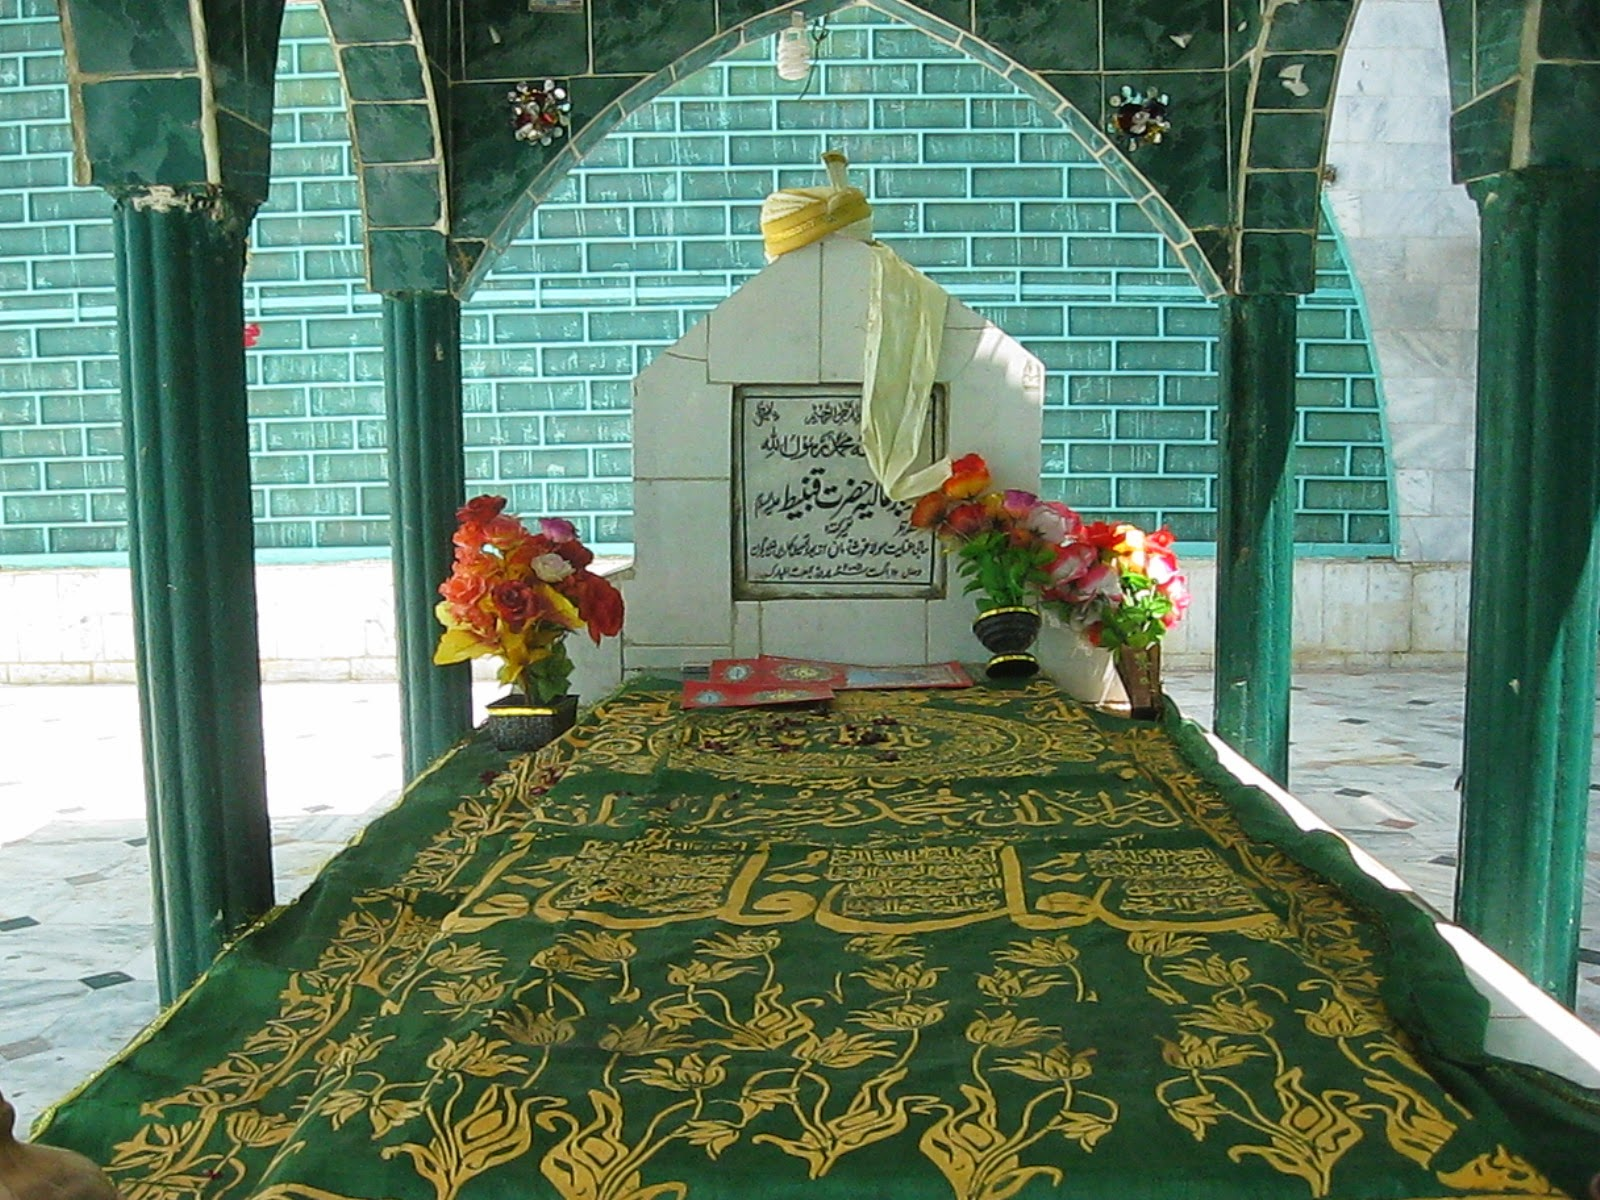 Hazrat Qanbeeta A.S of Bariala Sharif in Gujrat